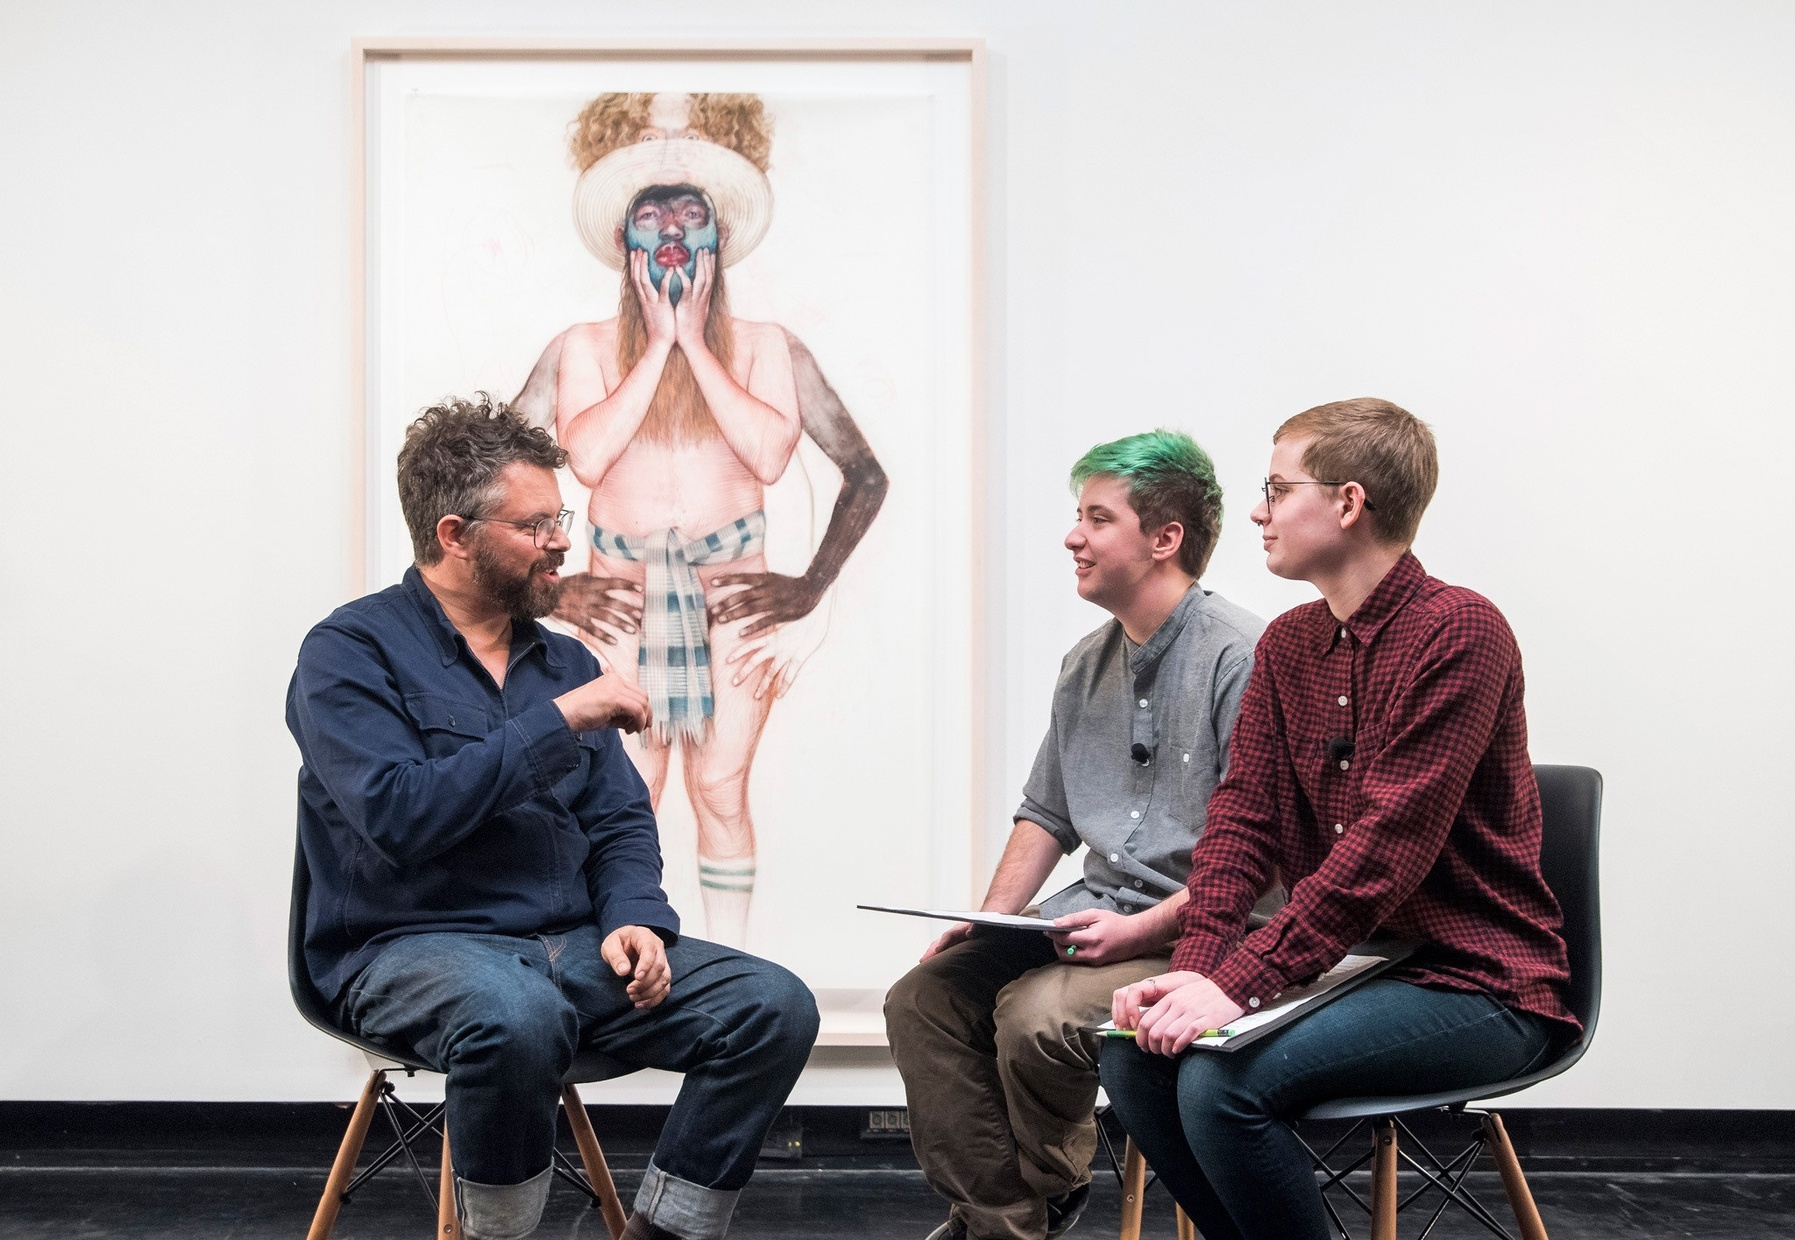 Artist Geoffrey Chadsey, a light-skinned, male, sits on a chair across from two light-skinned students, also sitting in chairs. A large framed artwork hangs on a wall behind them.